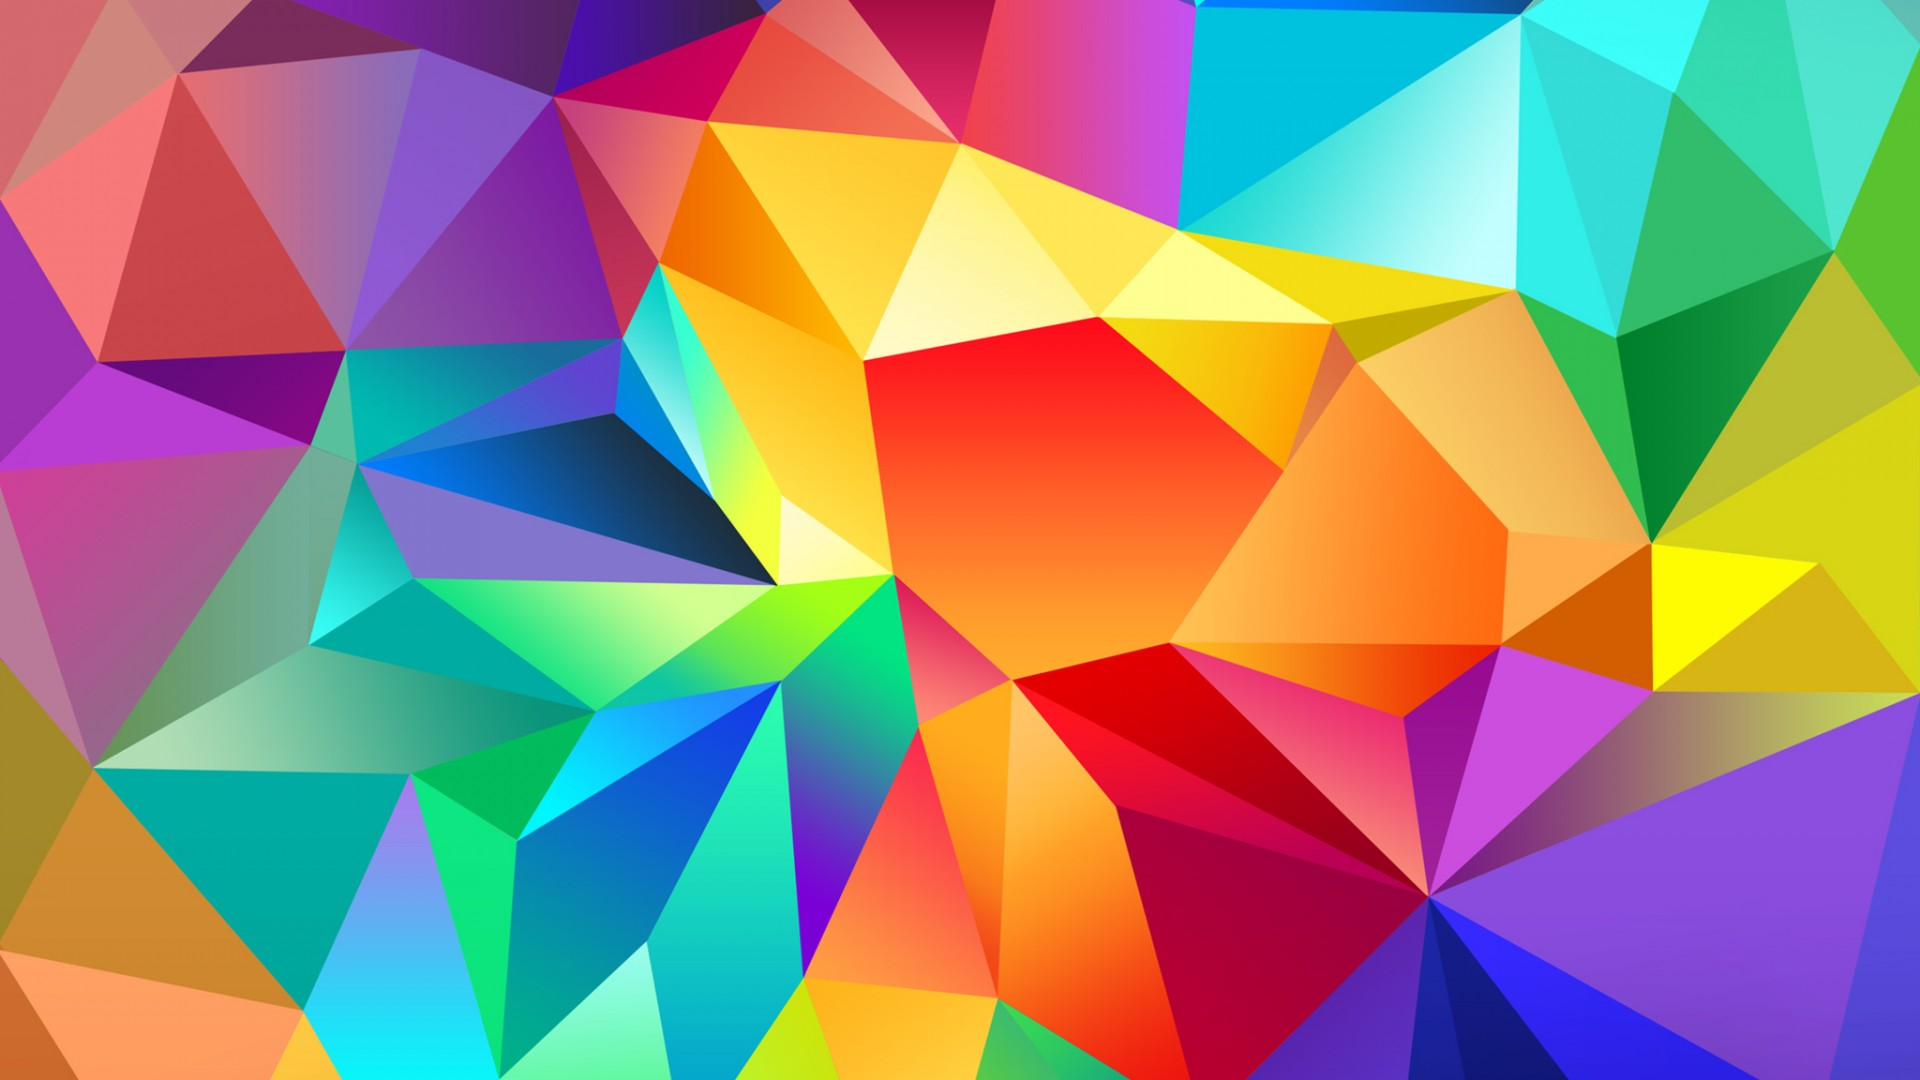 Wallpaper Polygon 4k Hd Wallpaper Android Wallpaper Triangle